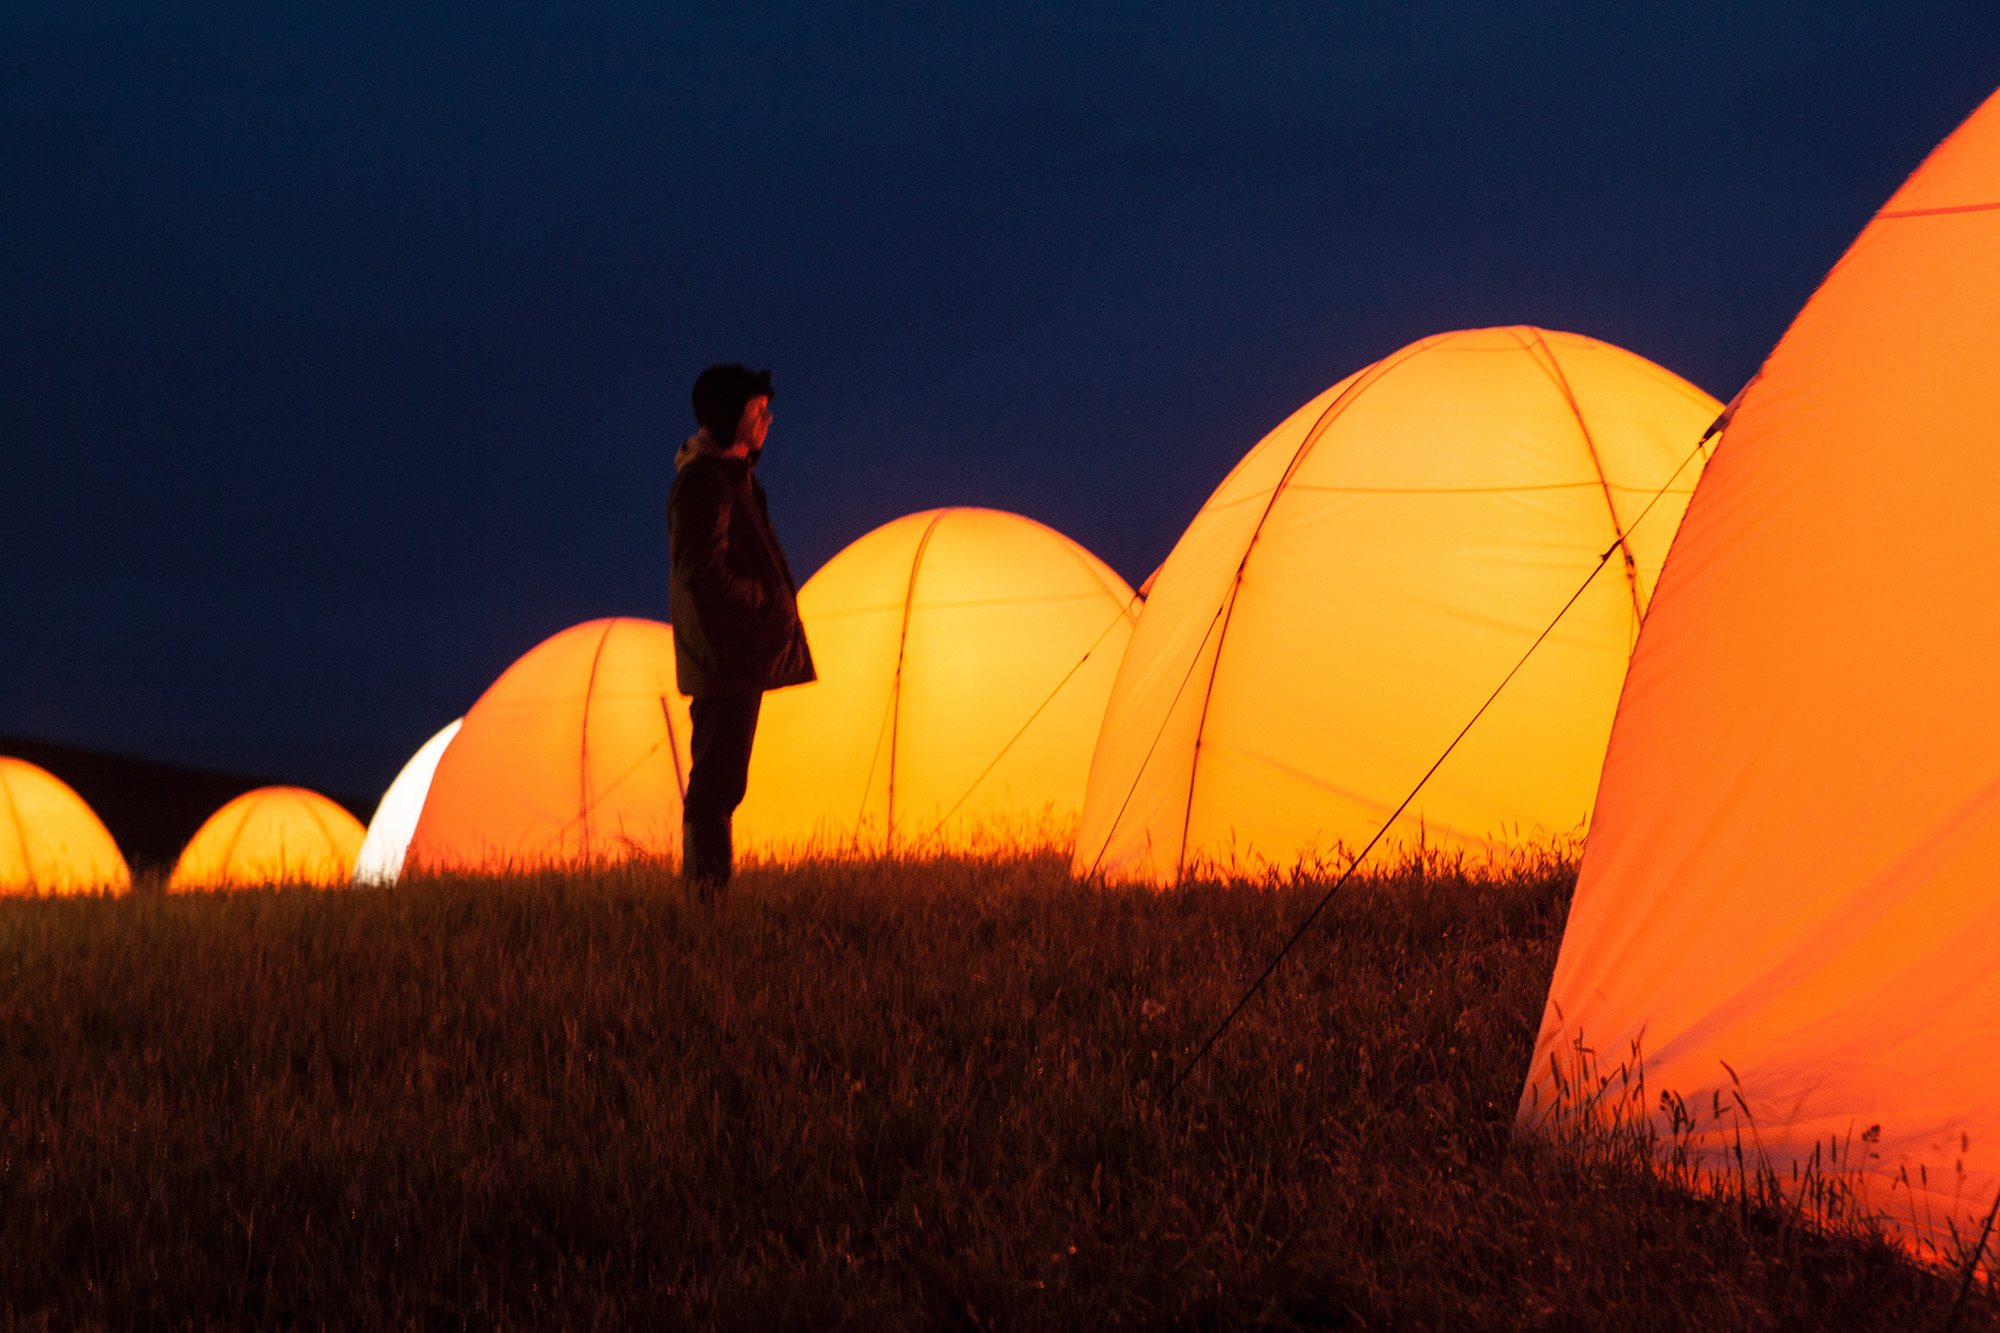 Boy standing in front of glowing tent in the dark